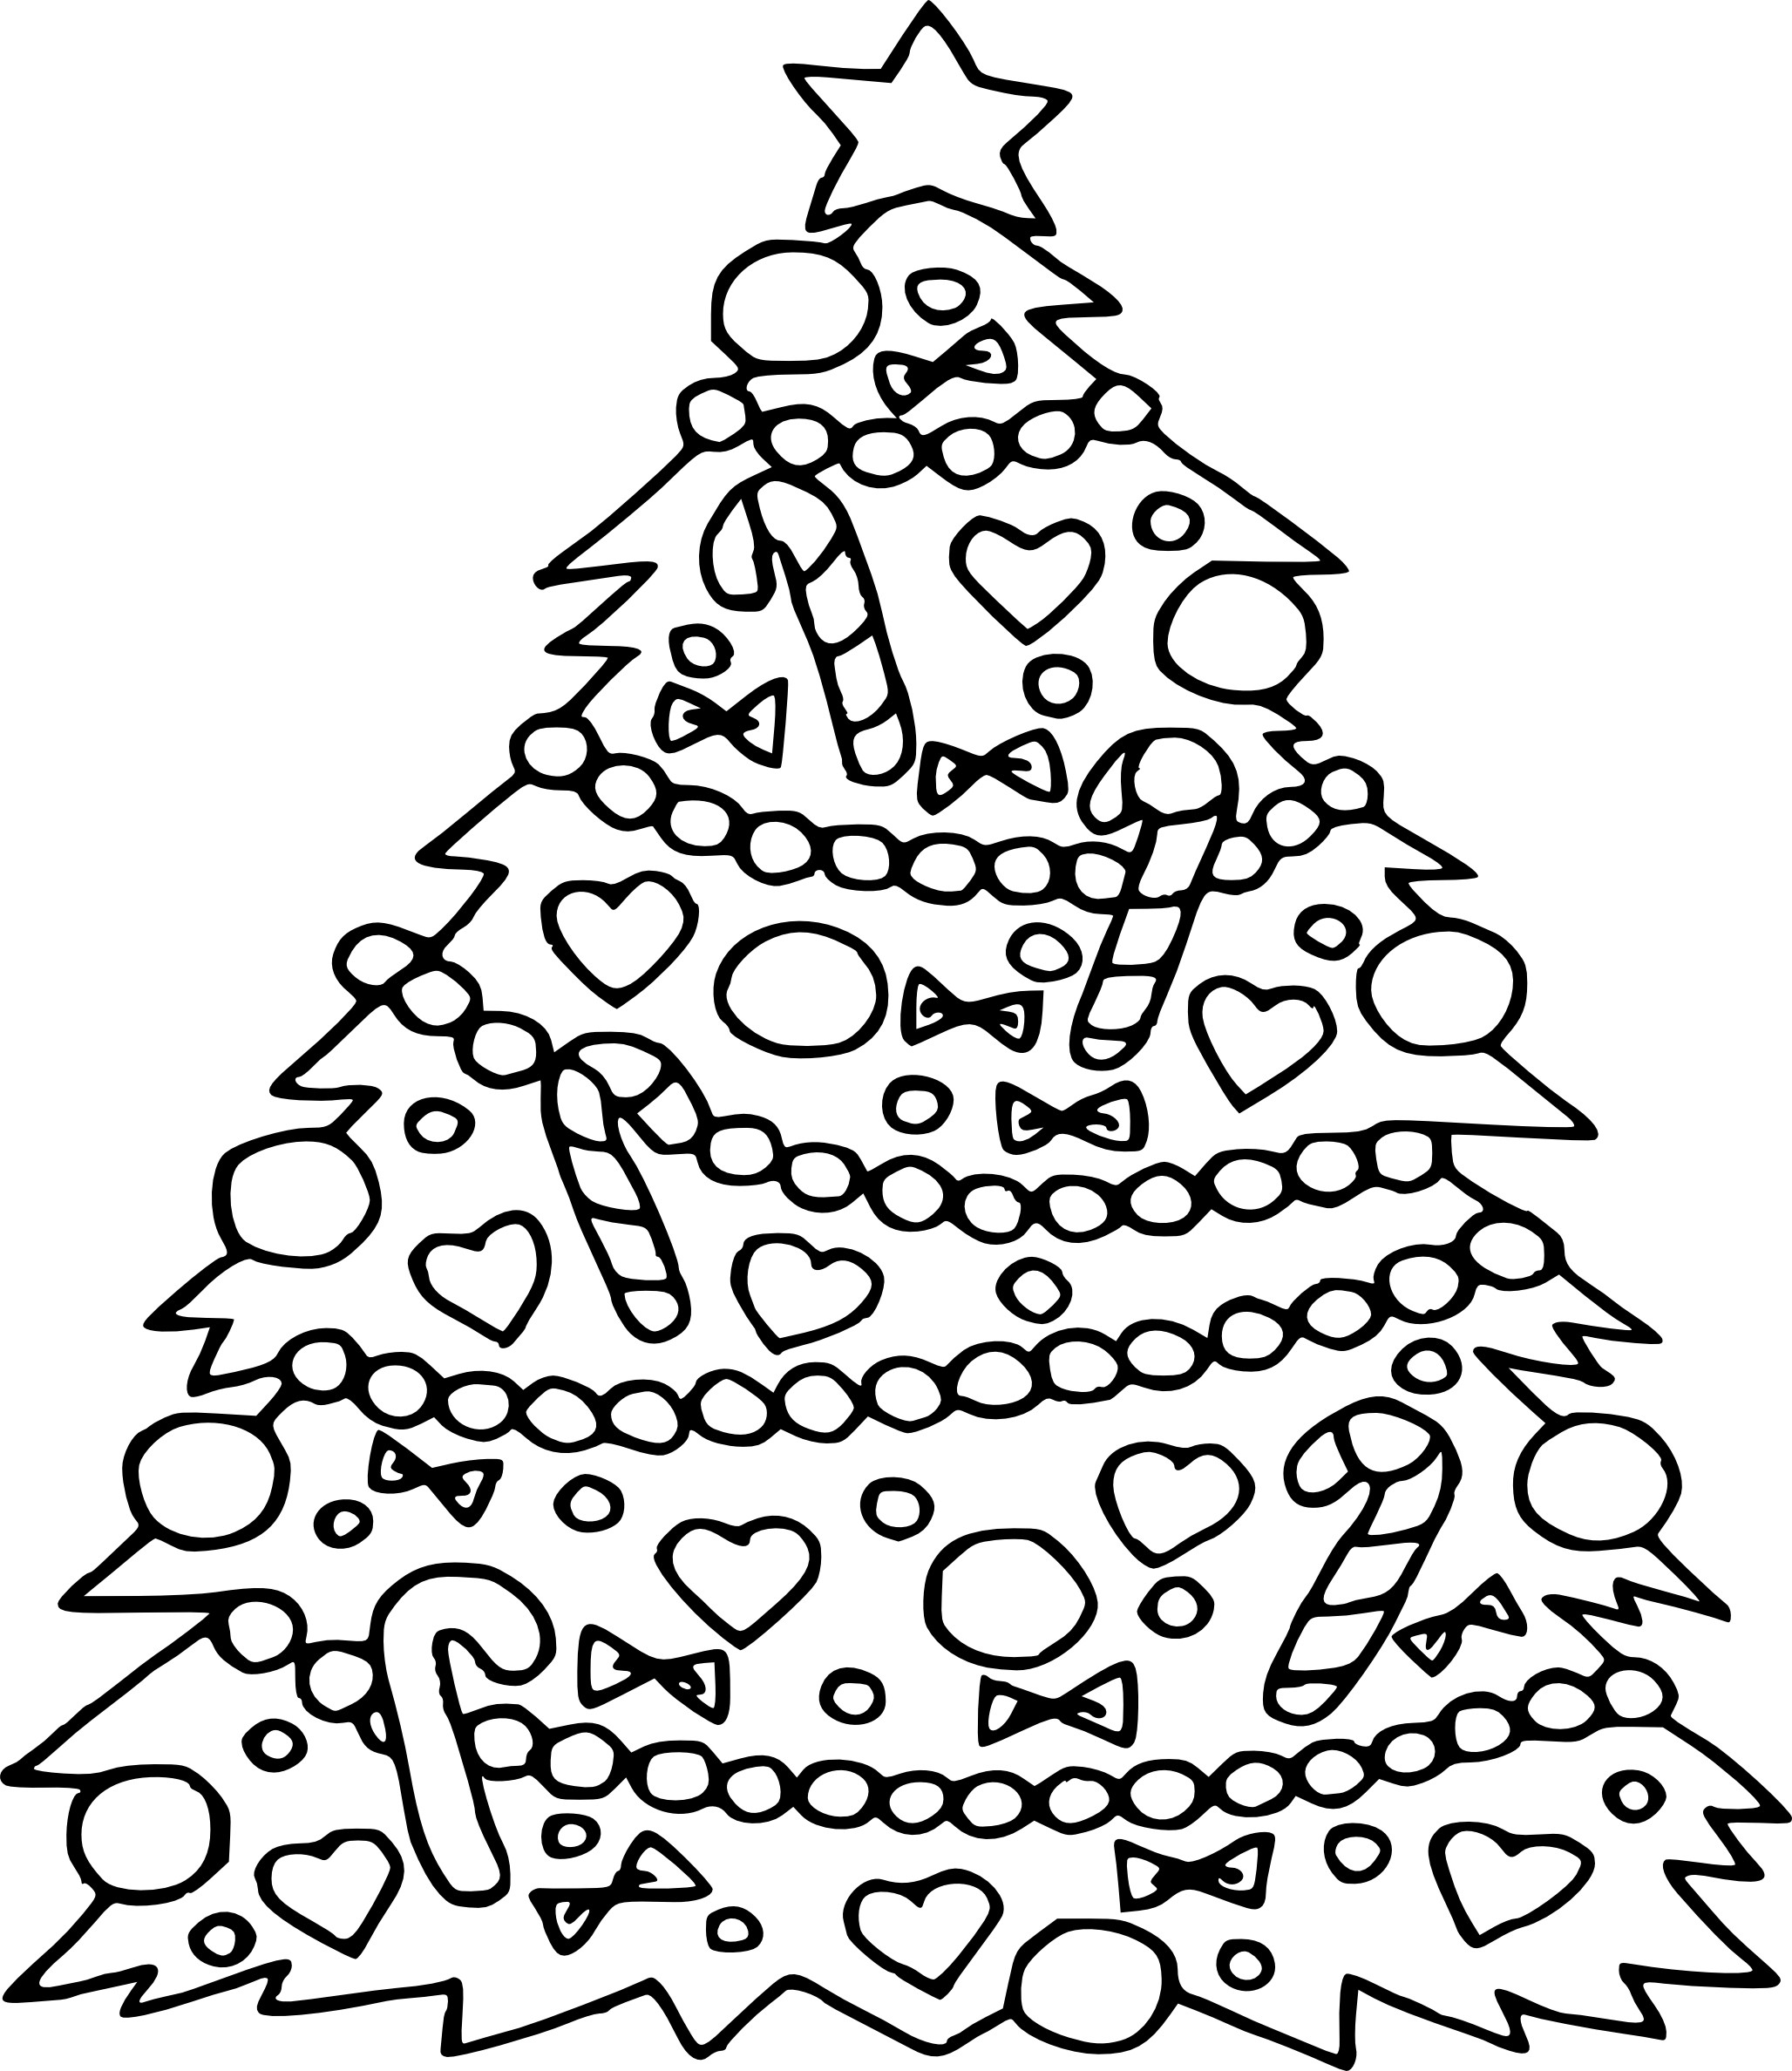 image regarding Free Printable Christmas Tree Template named Free of charge Printable Xmas Tree Coloring Webpages at GetDrawings